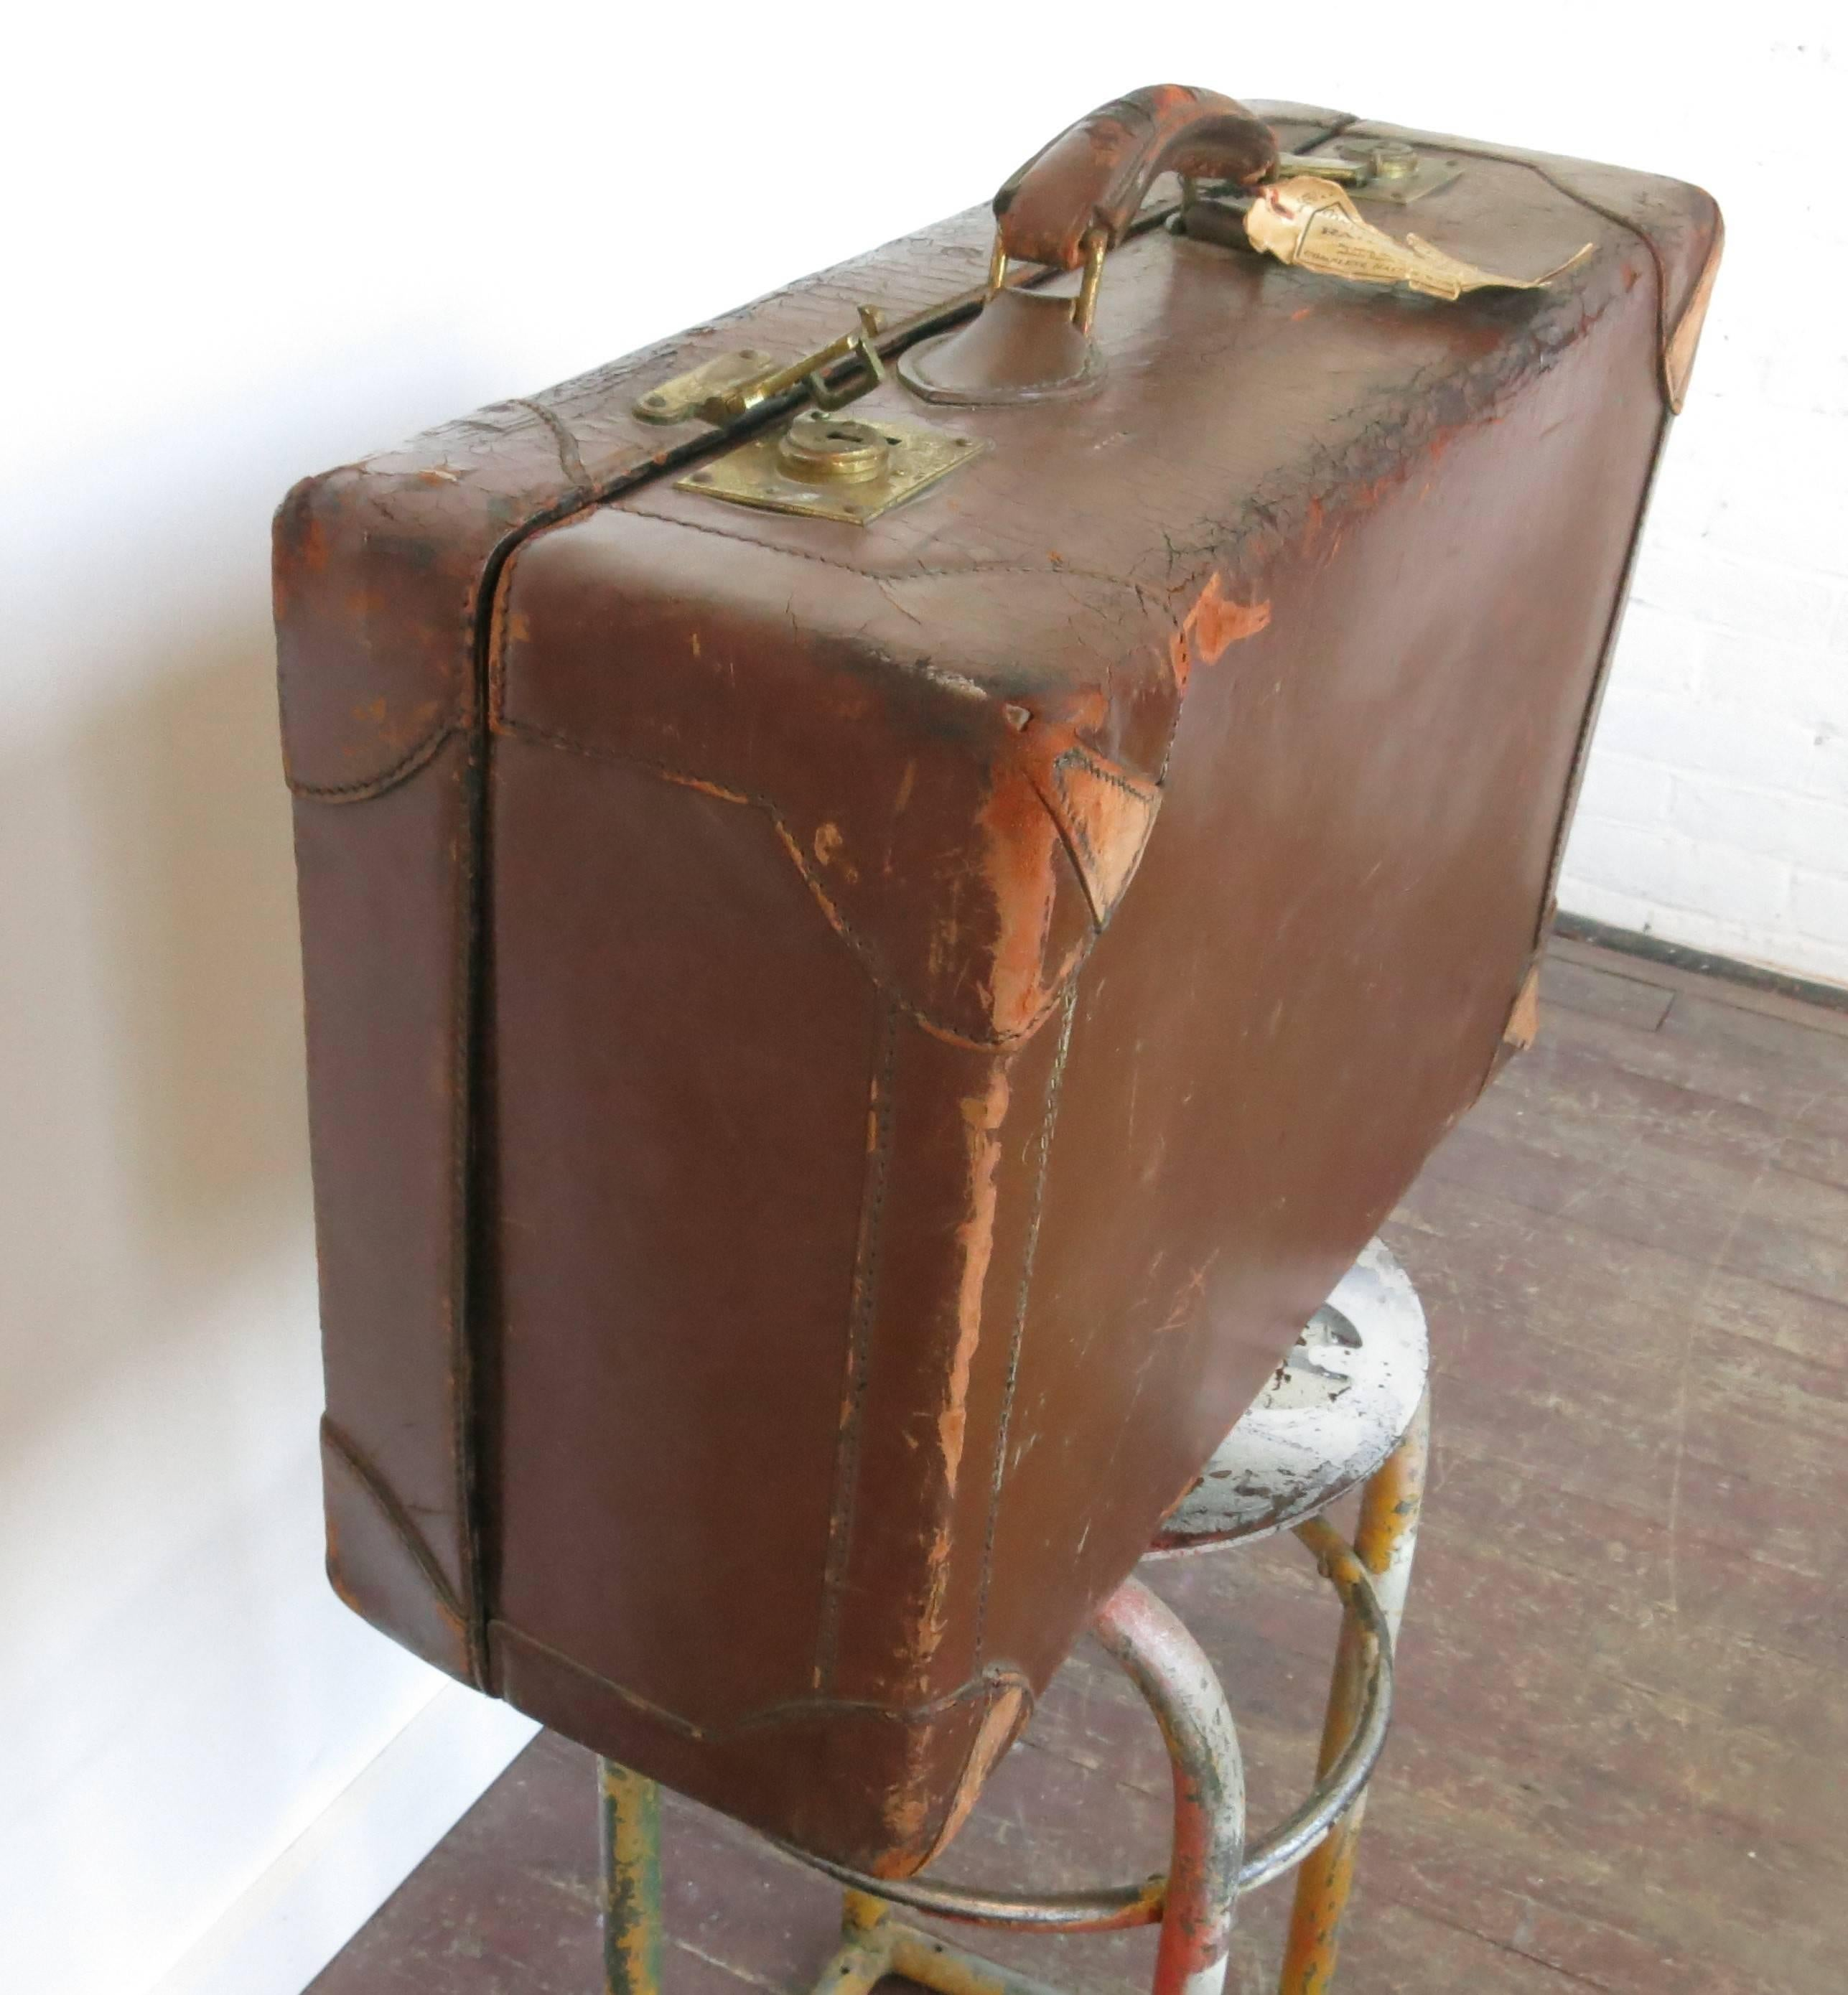 with explorer bound case of luggage vintage plywood waterproof fascinating suitcase drawers cabinet image it outward wheel